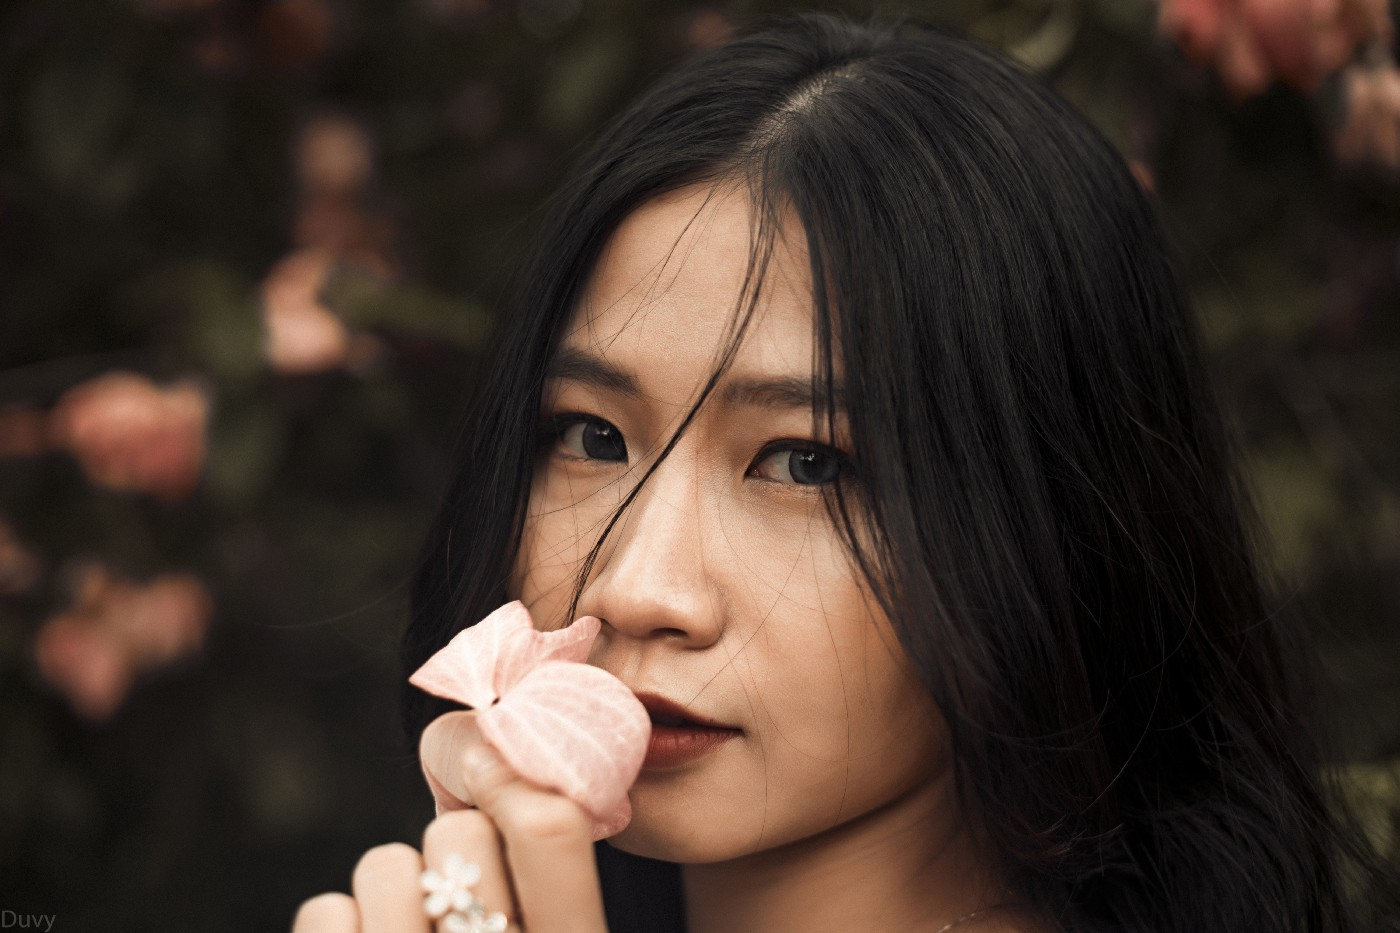 A young woman smelling flowers